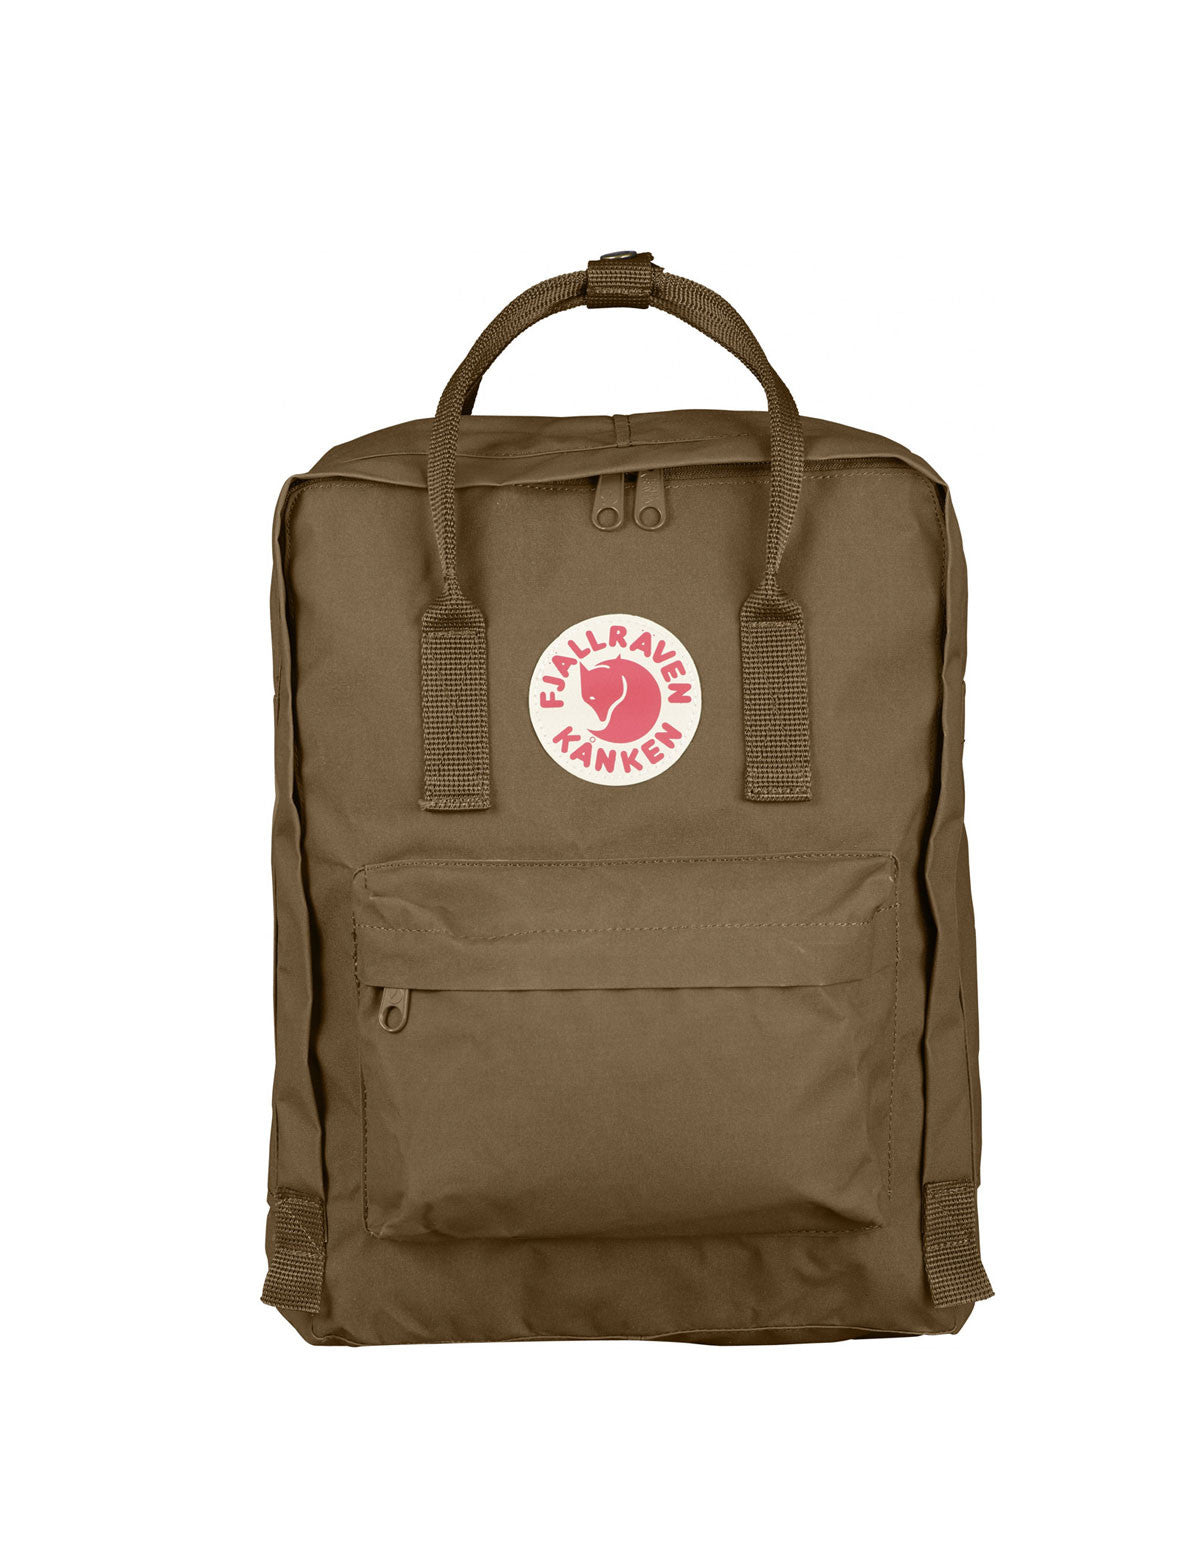 Fjallraven Kanken Backpack Sand - Still Life